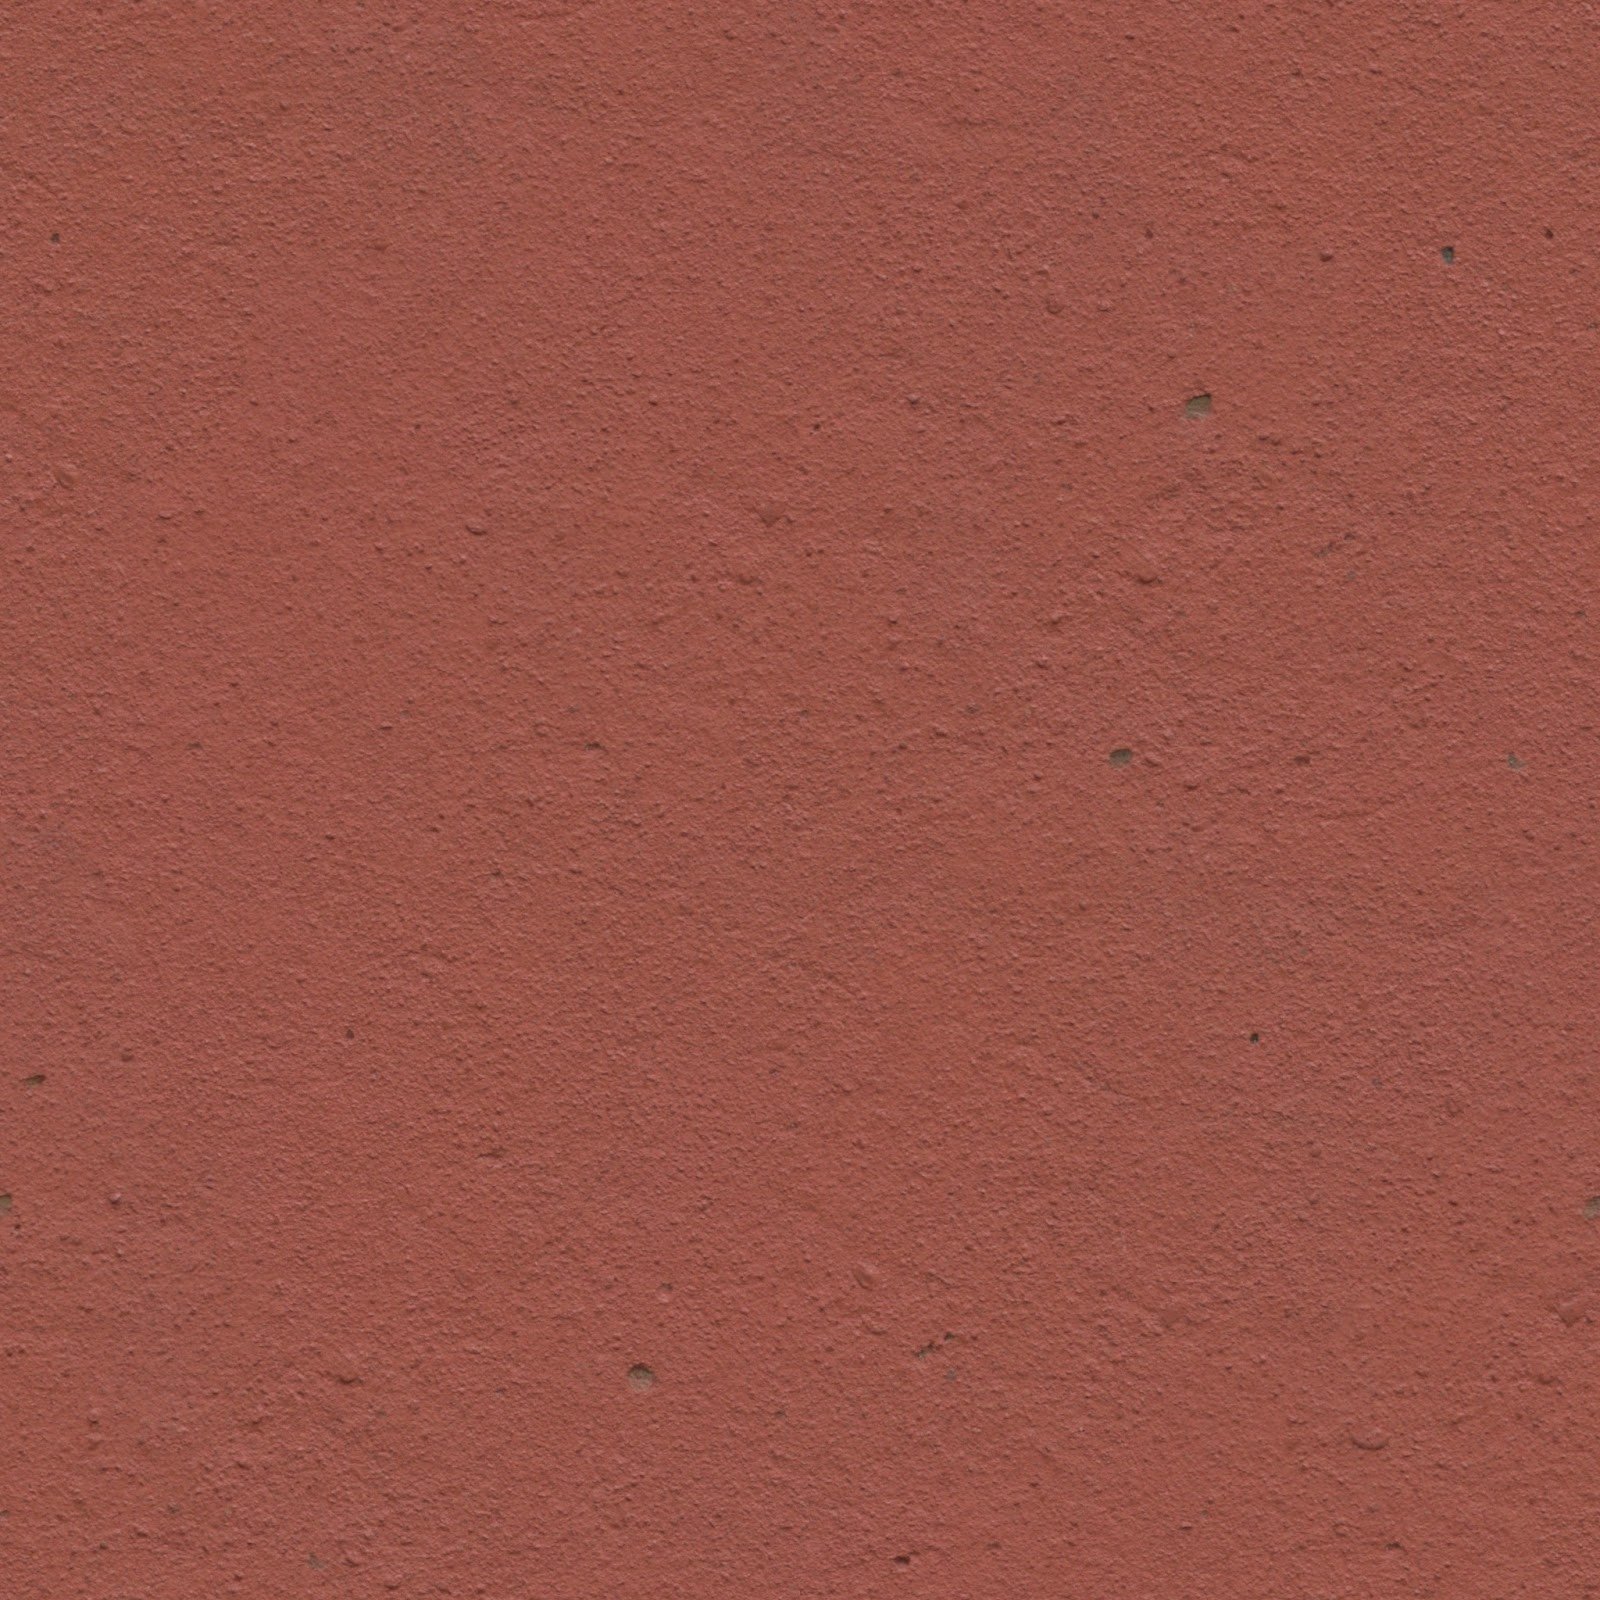 Stucco red wall feb_2015 seamless texture 2048X2048